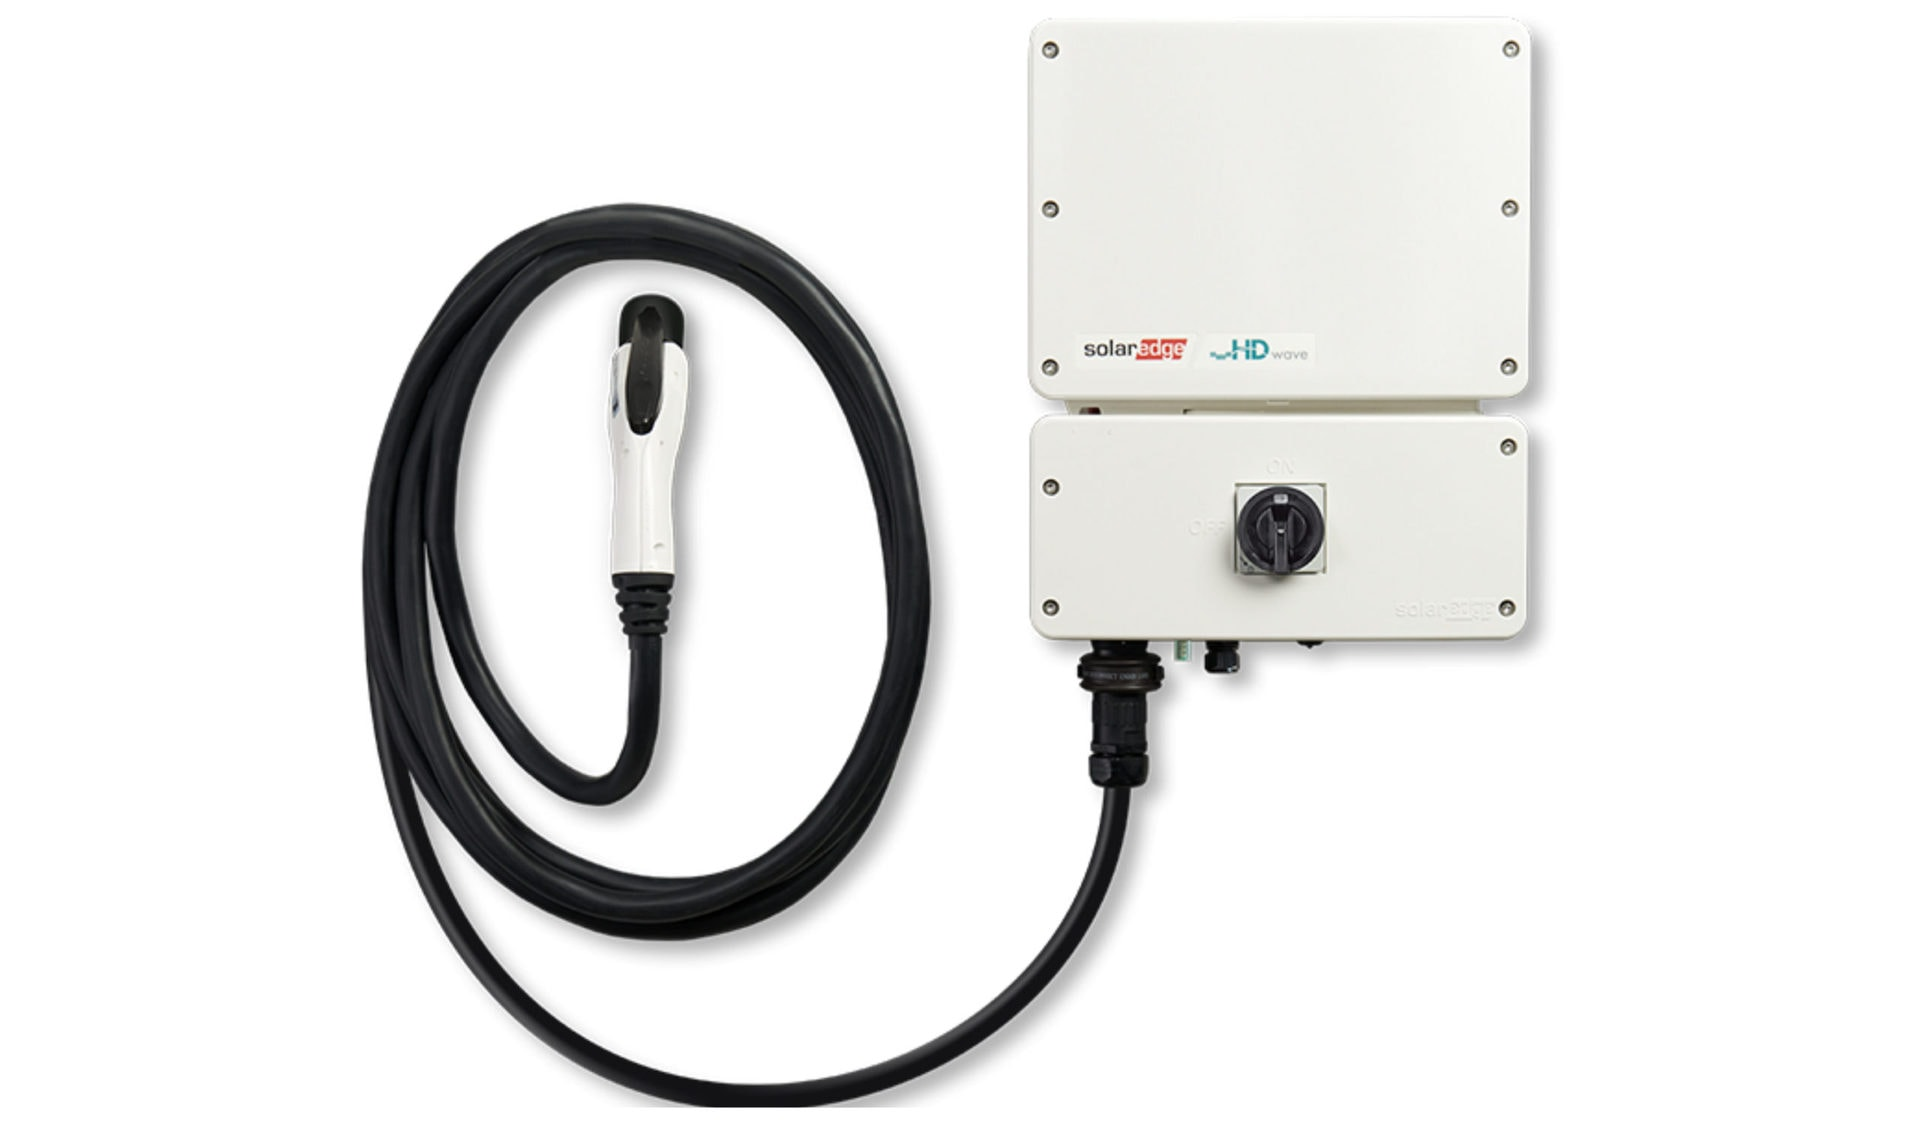 SolarEdge inverter with EV charger